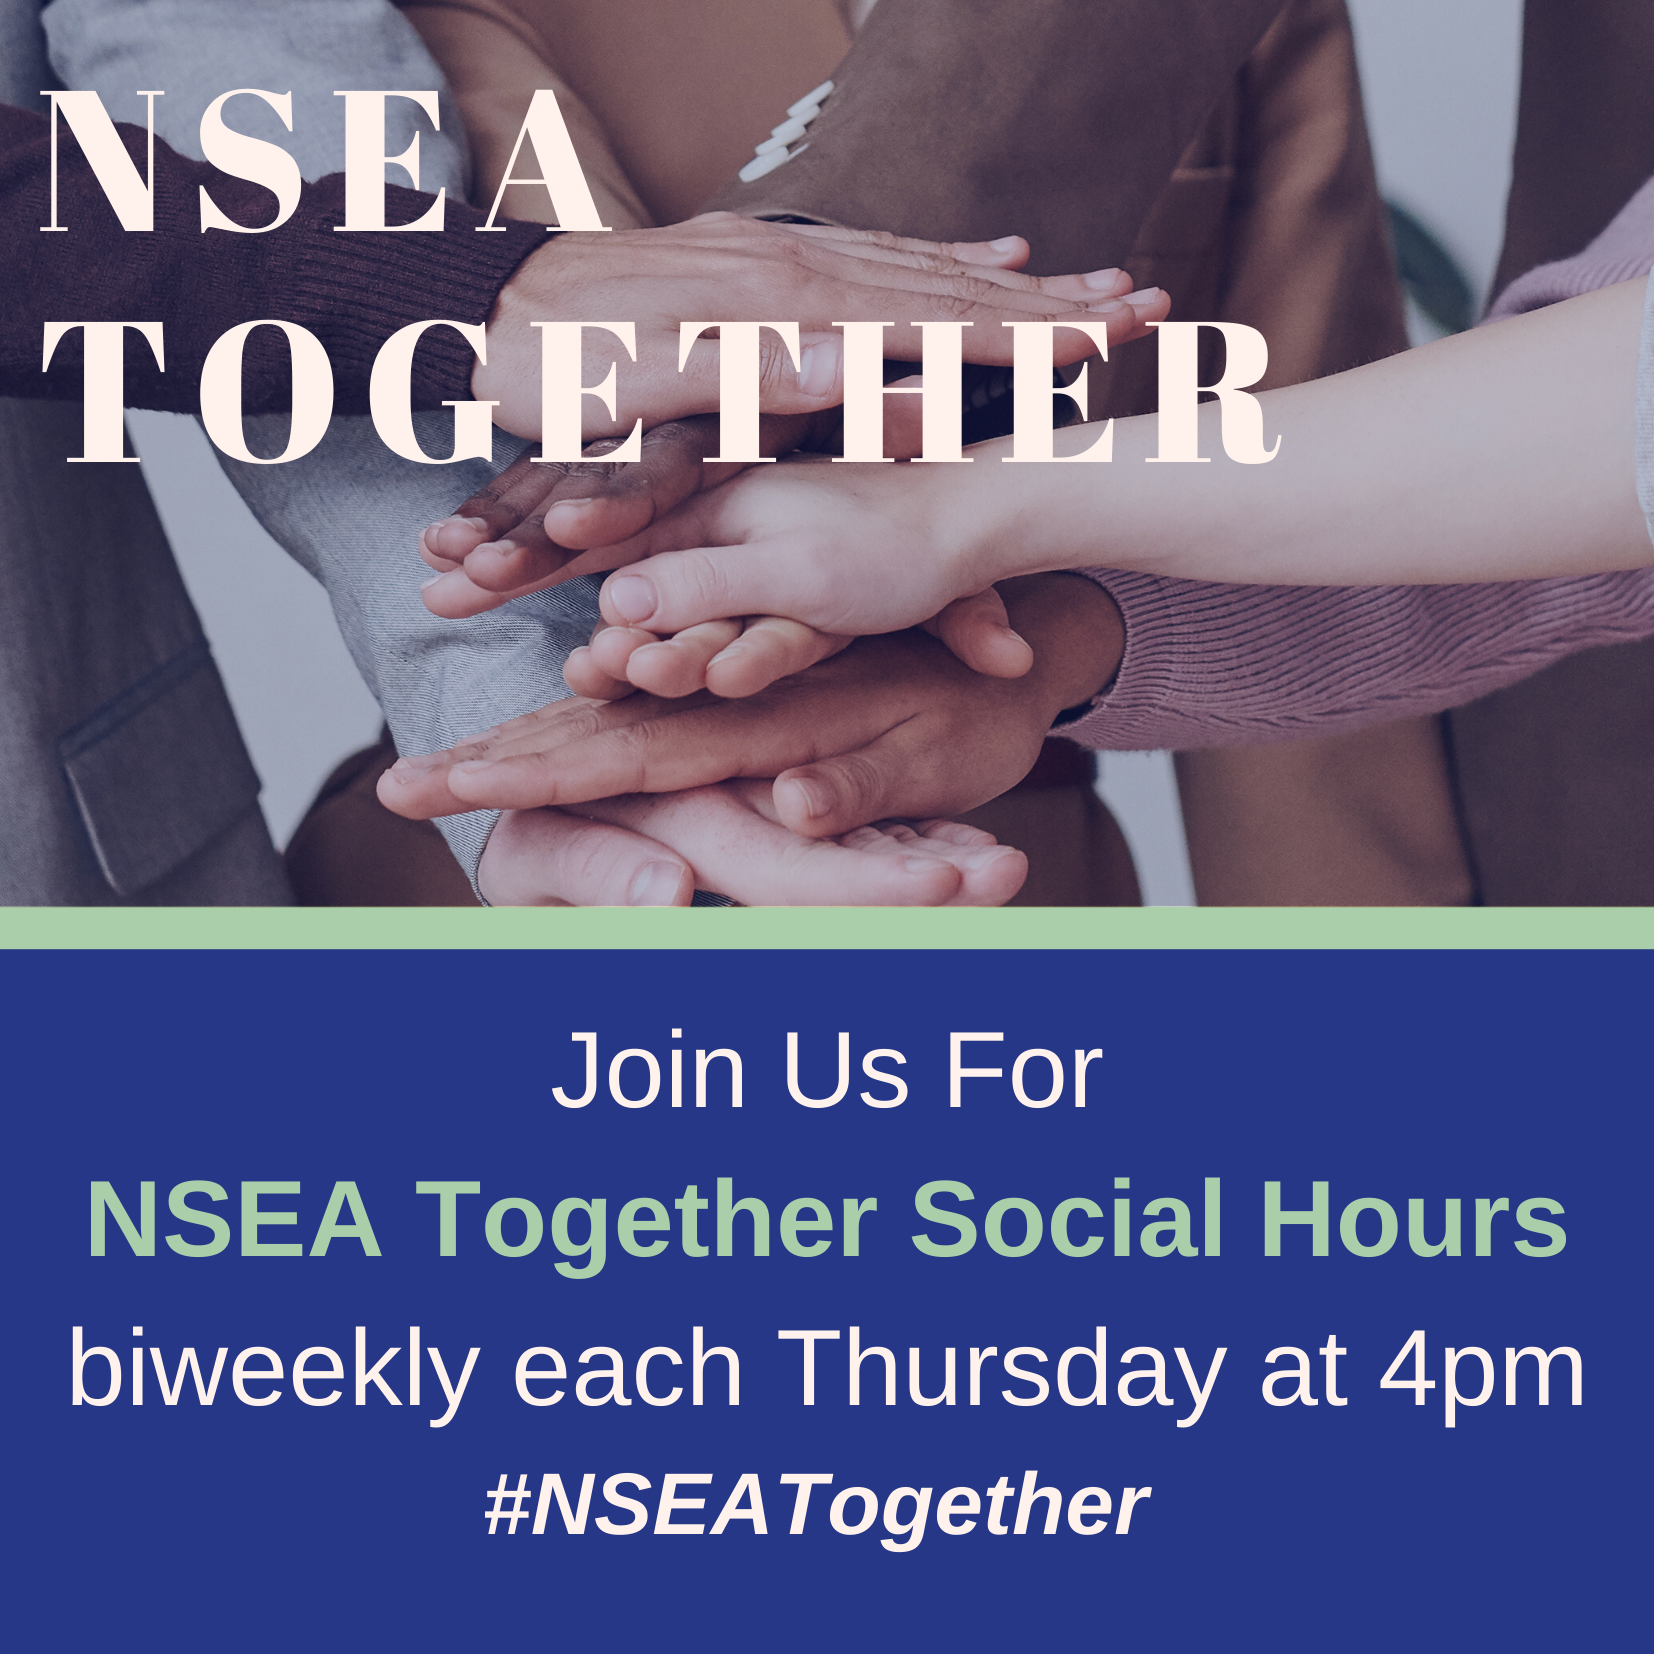 NSEA Social Hour Image